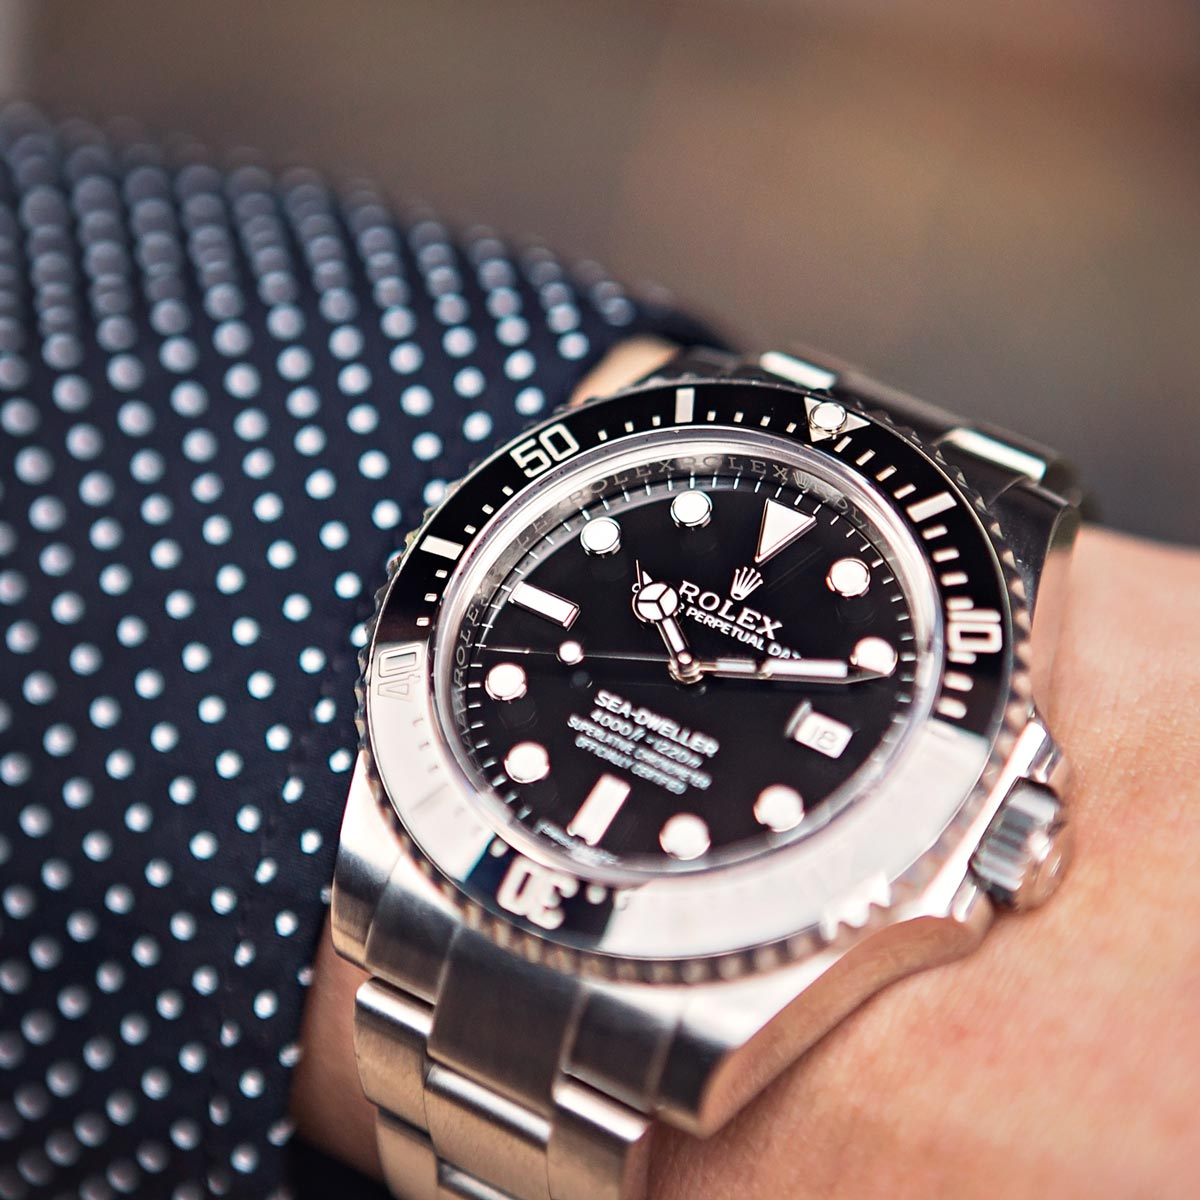 Sea-Dweller Reference 116600